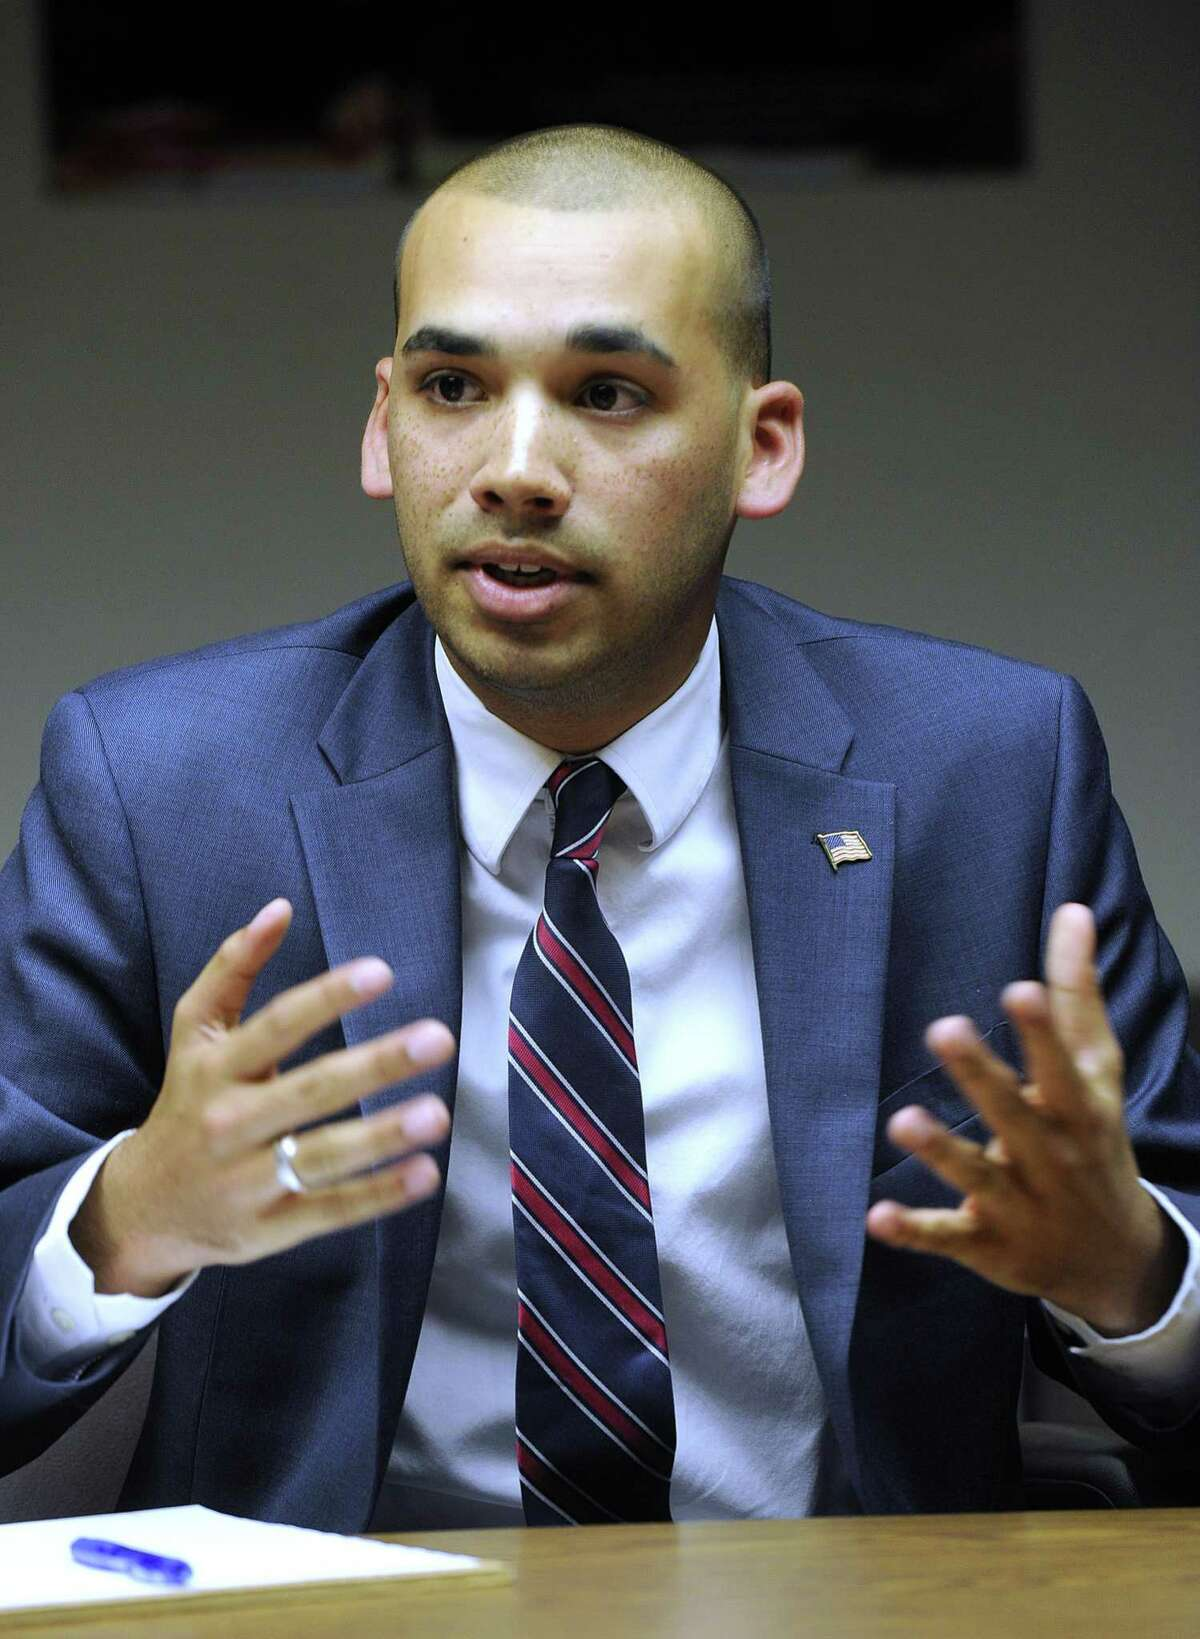 Democrat Raghib Allie-Brennan, pictured, and Republican Will Duff are vying for state Rep. Dan Carter's open seat in District 2. The two met with The News-Times editorial board Thursday, Oct. 6, 2016.